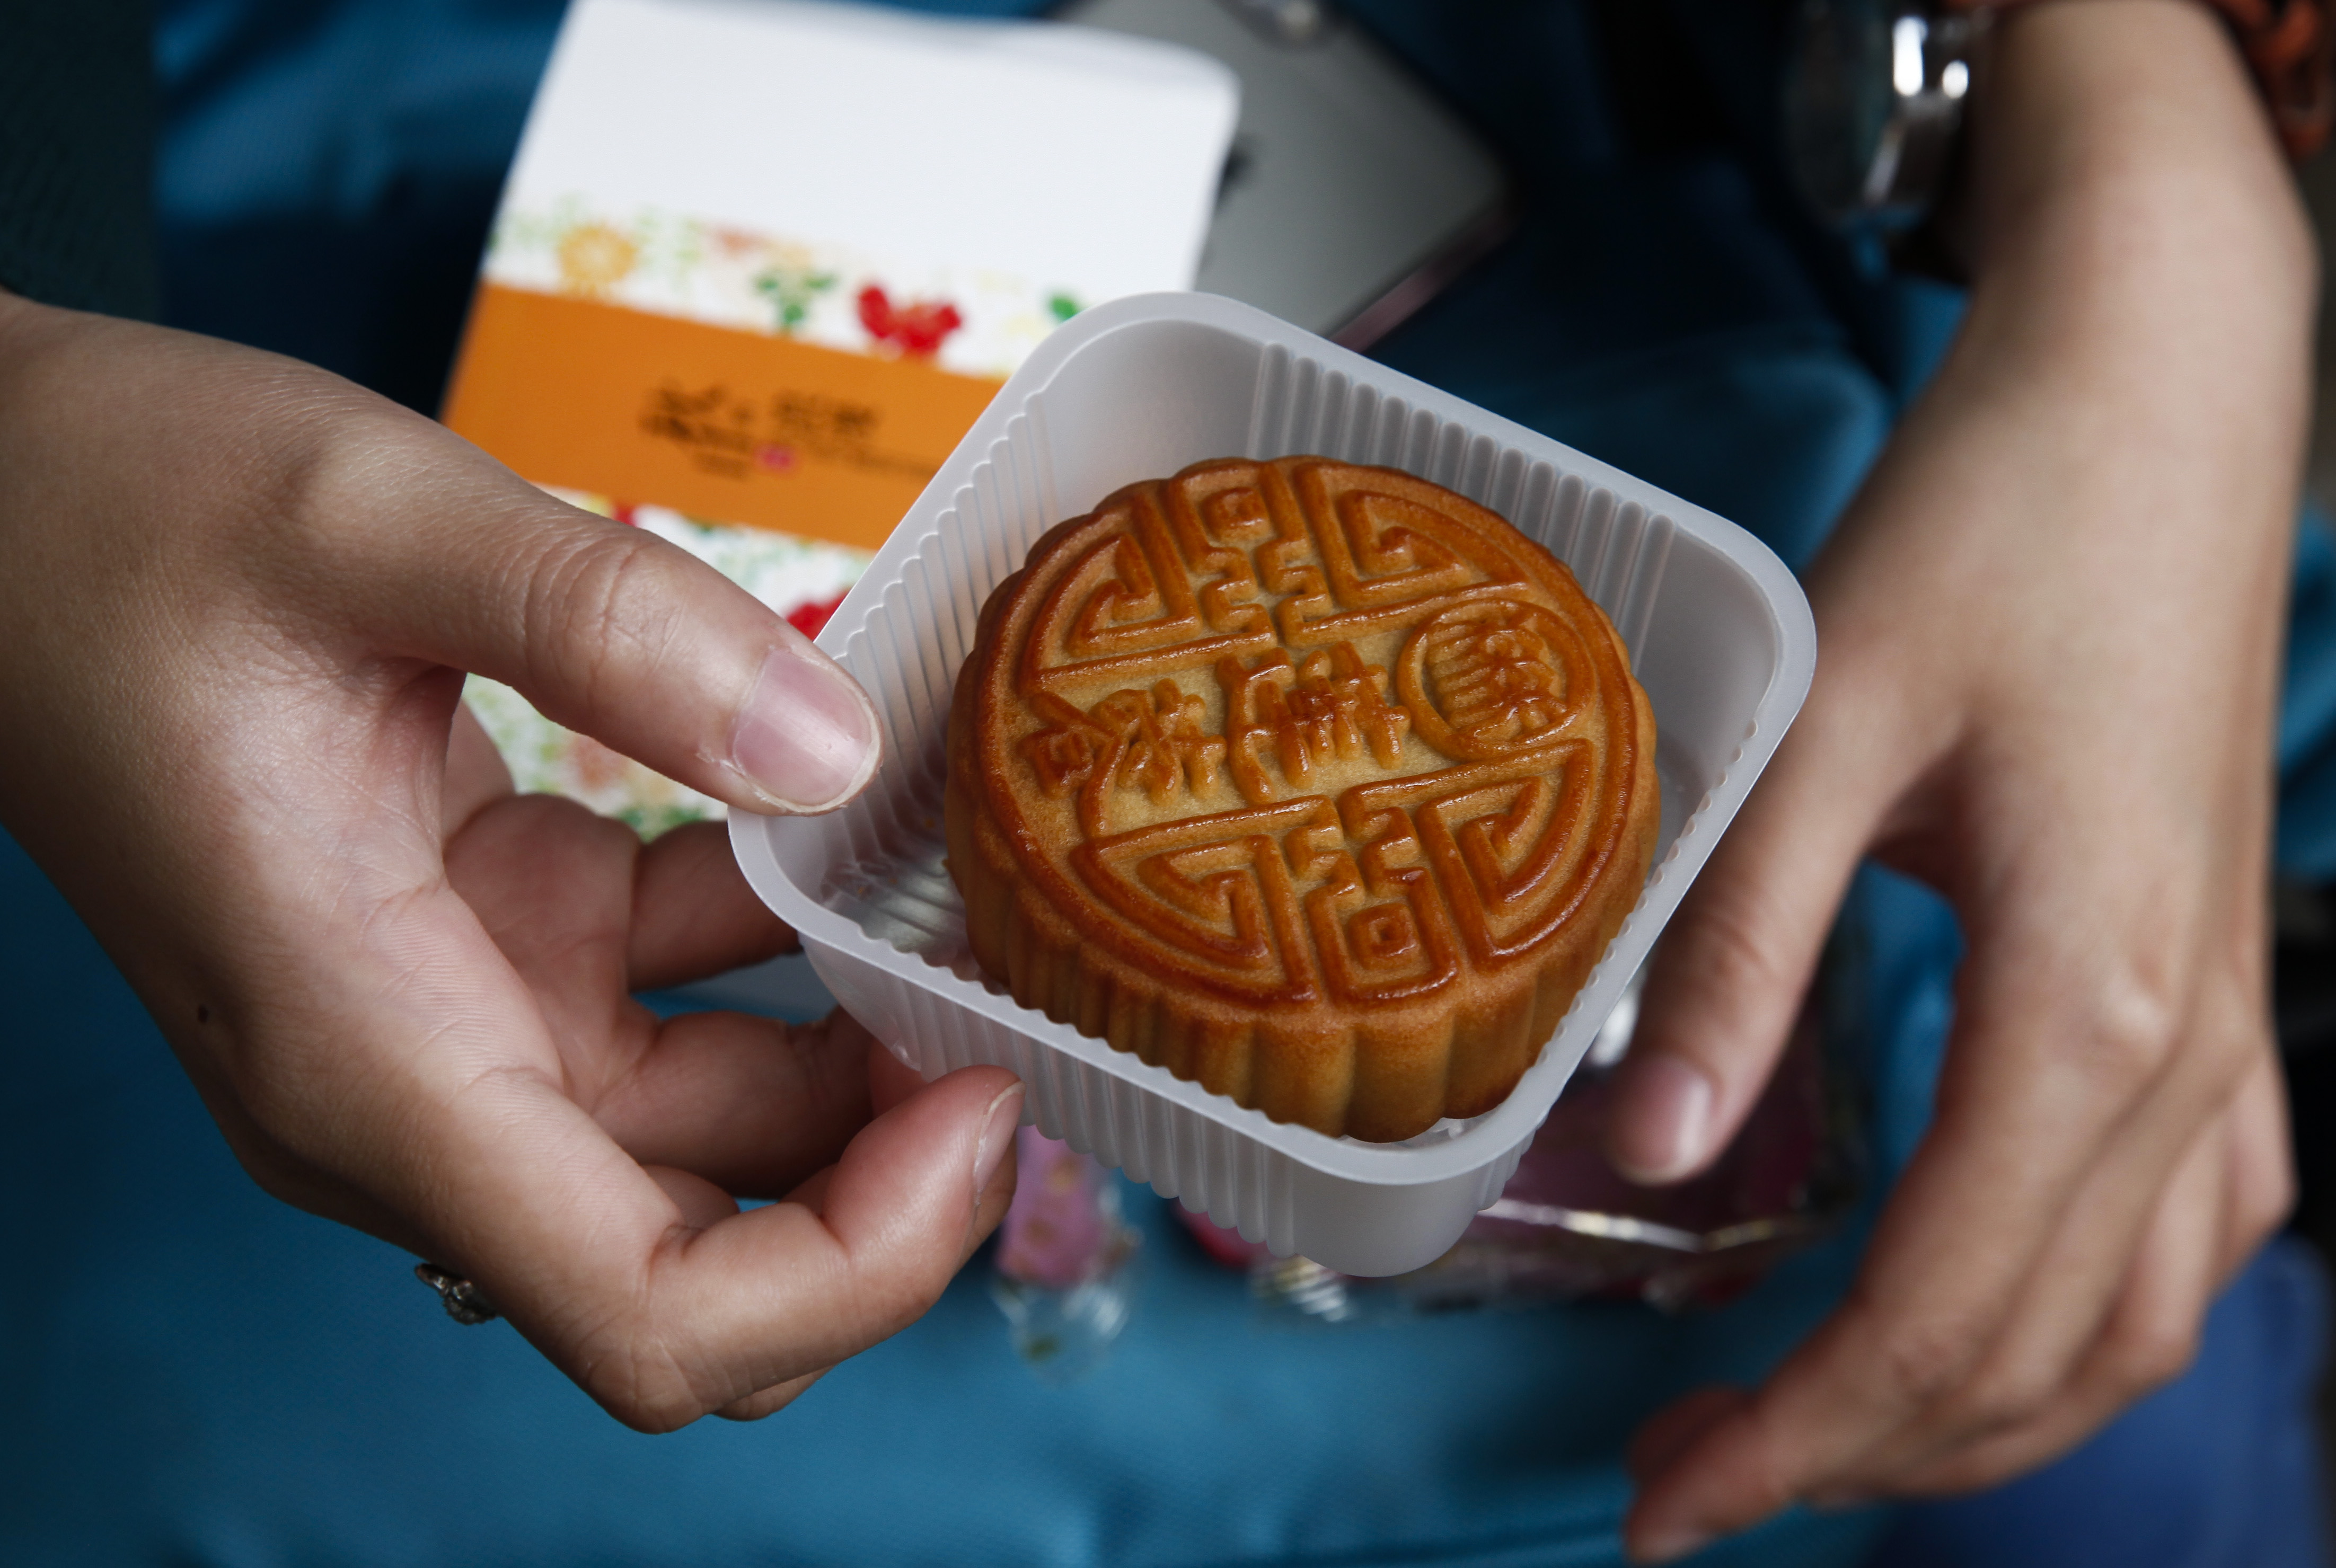 epa05540266 A college-level Indonesian student opens a box of mooncakes as part of an activity held to teach foreign students about the Mid-Autumn Festival at Jingshan Park in Beijing, China, 15 September 2016. China observes the Mid-Autumn Festival or Mooncake Festival on 15 September, which this year is the 15th day of the eighth month in the lunar calendar where traditionally family members and friends gather to admire the mid-autumn moon and eat moon cakes together.